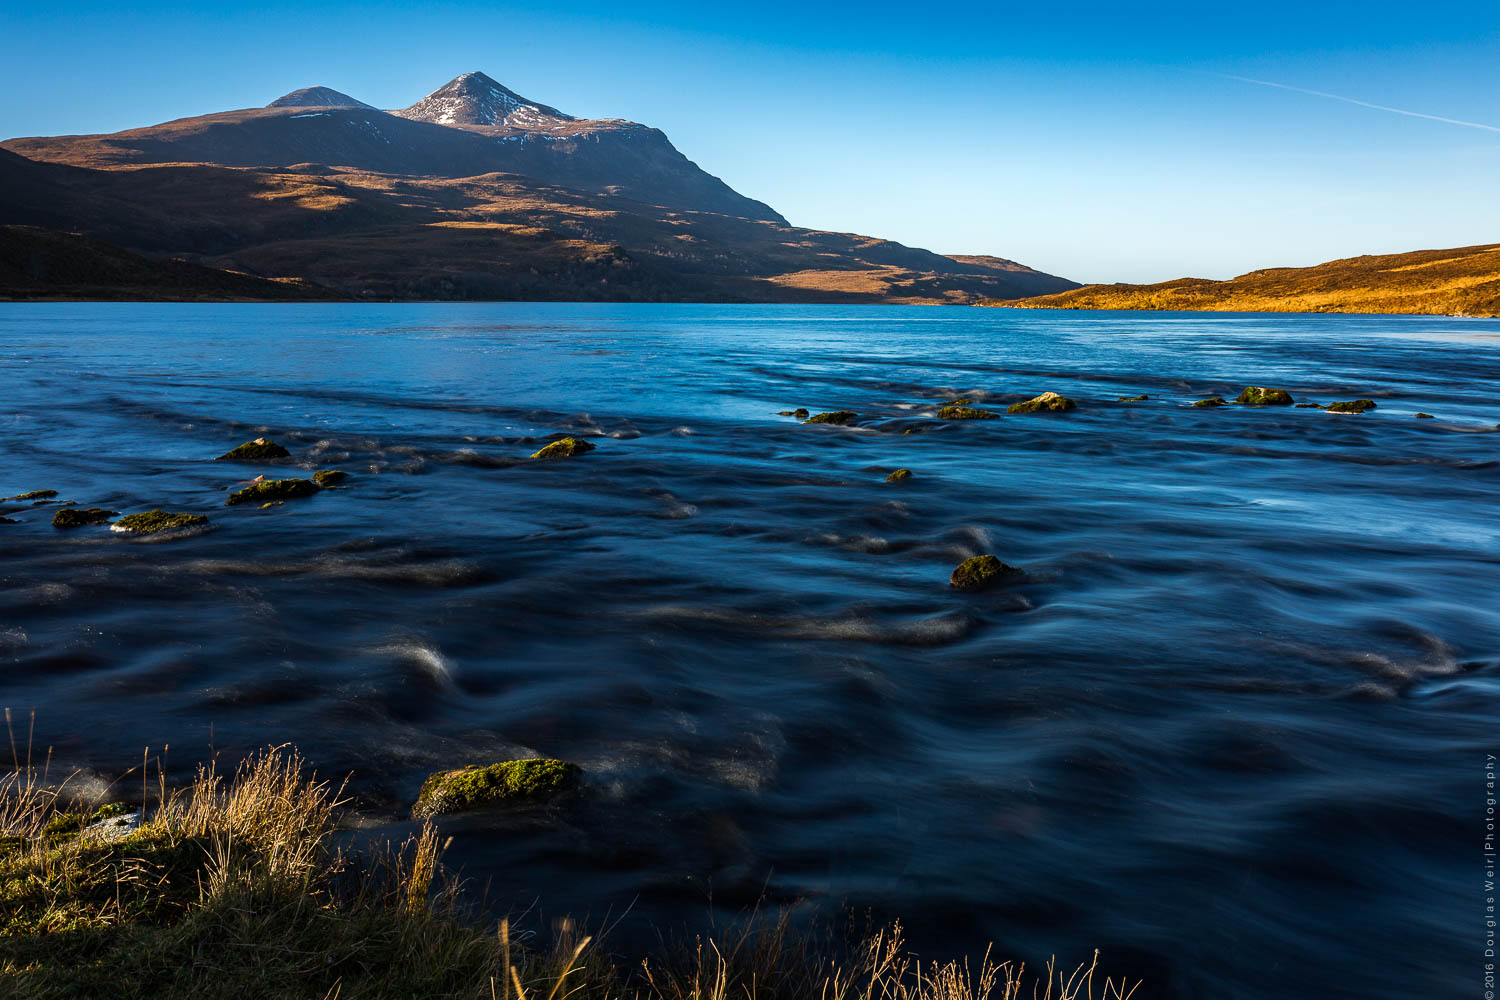 Fionn Loch and Cul Mhor in mid-morning light.